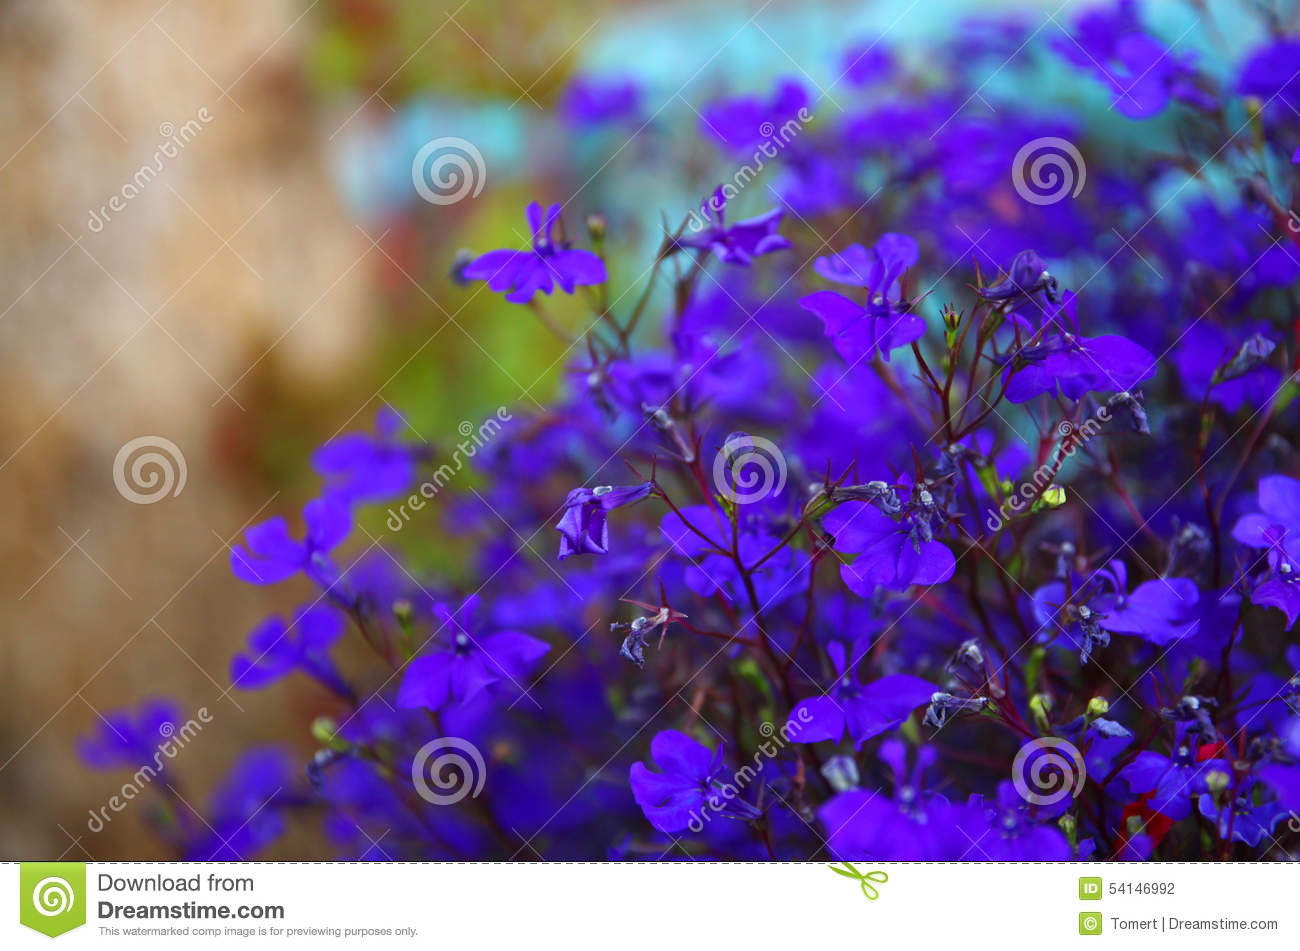 Abstract image of Pink and purple flowers bloom, with glitter overlay